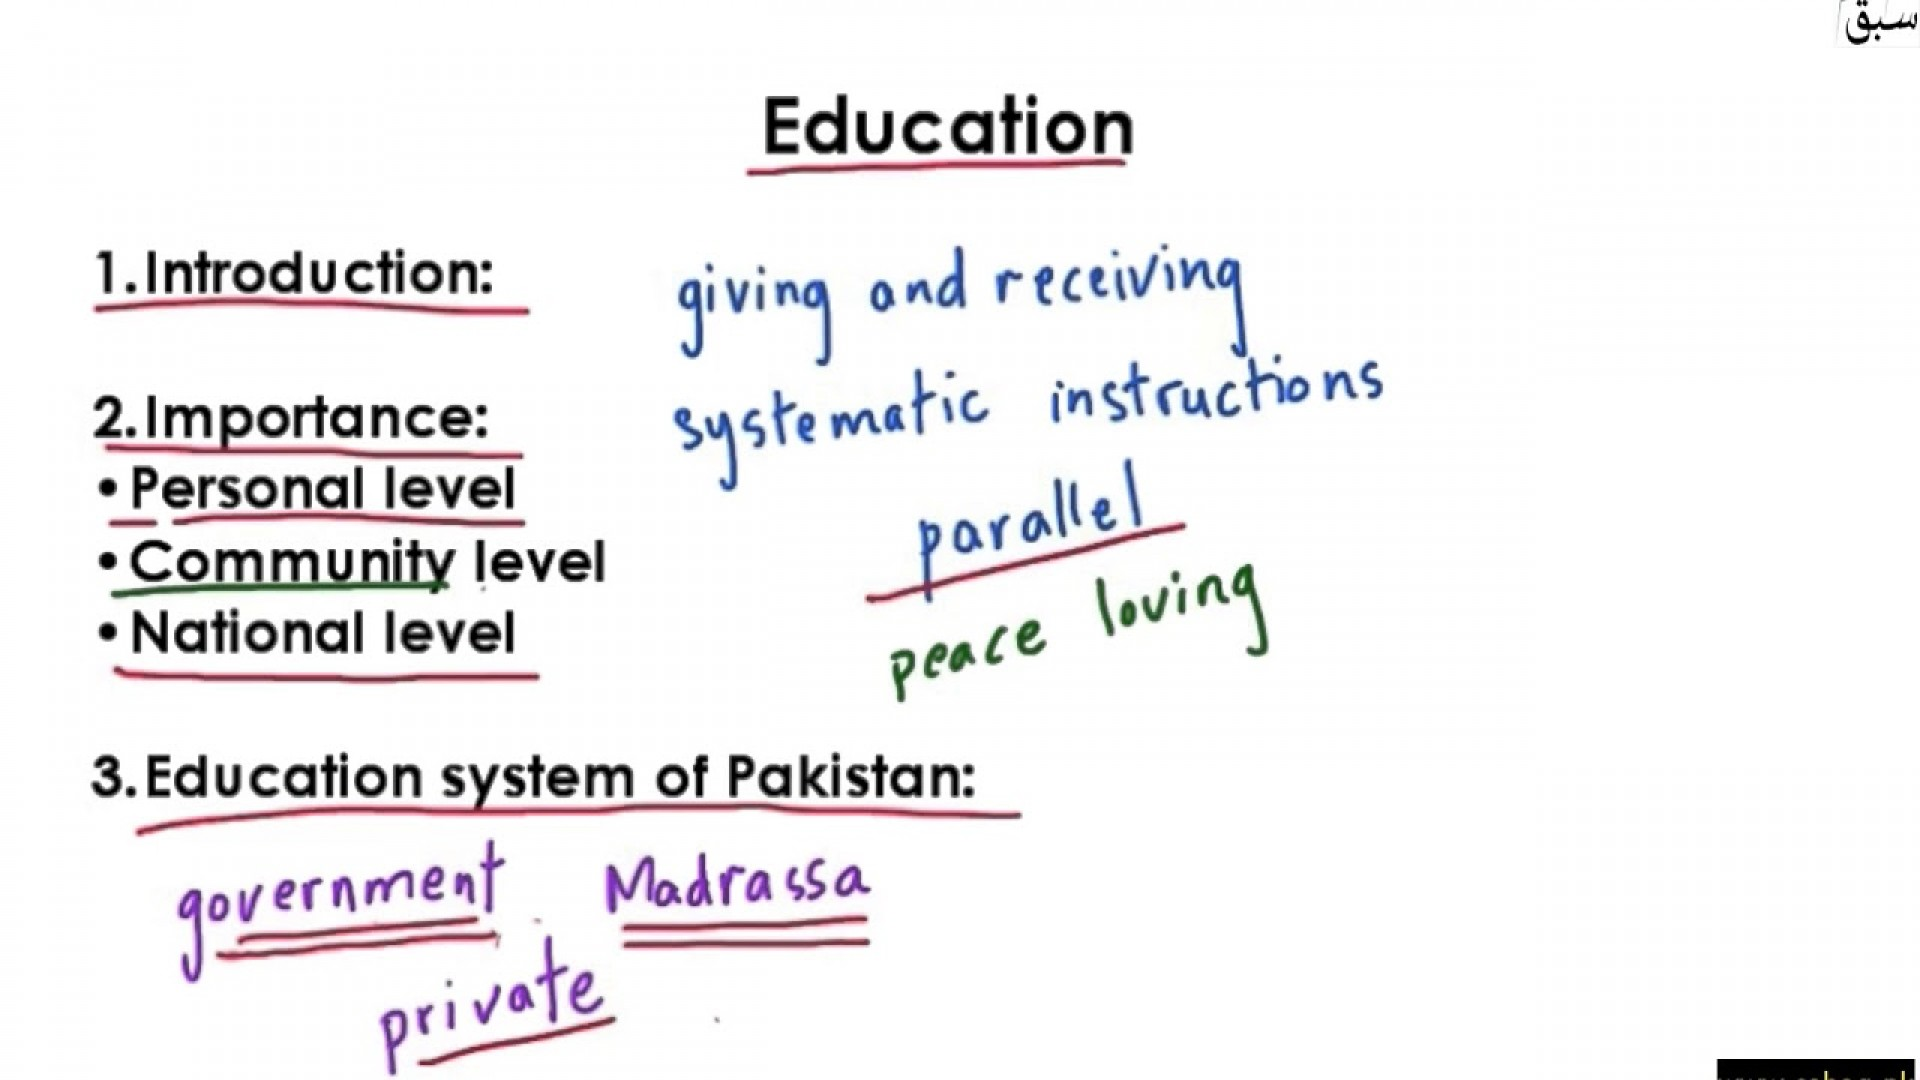 006 Essay Example On Education Impressive Educational And Professional Goals Importance In Development Of Country 1920